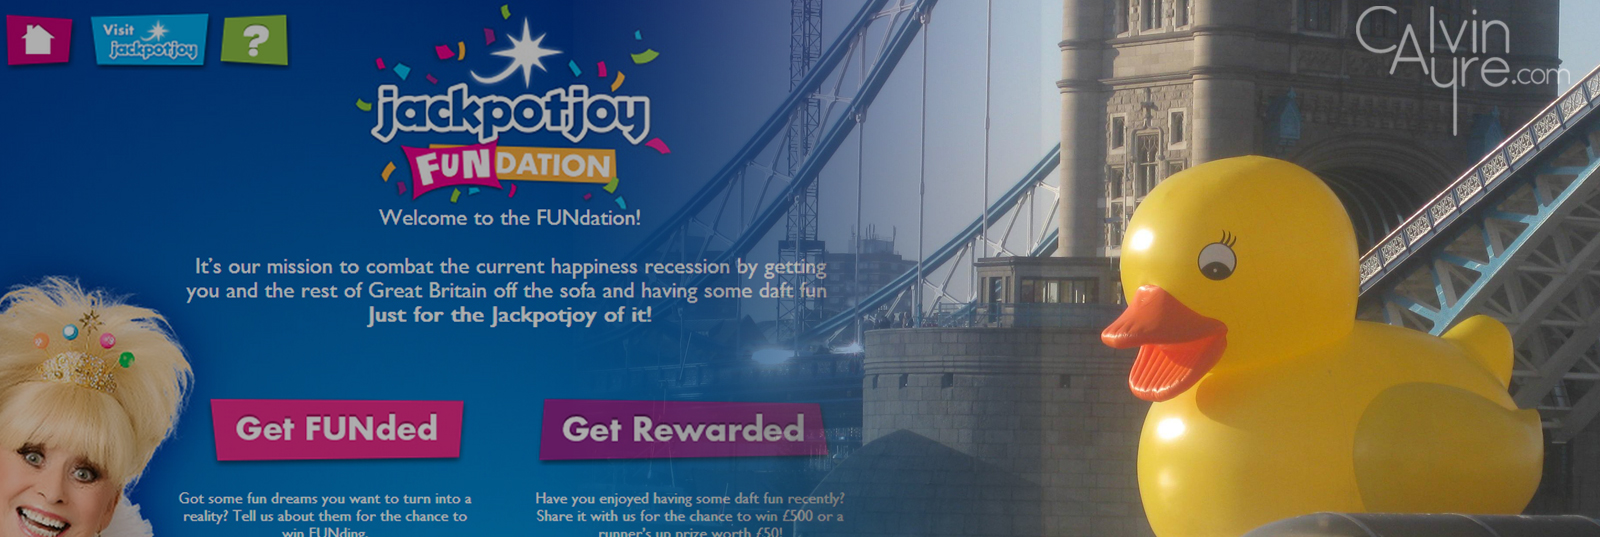 Jackpot Joy FUNdation Facebook App, Gamesys Giant Rubber Duck on Thames